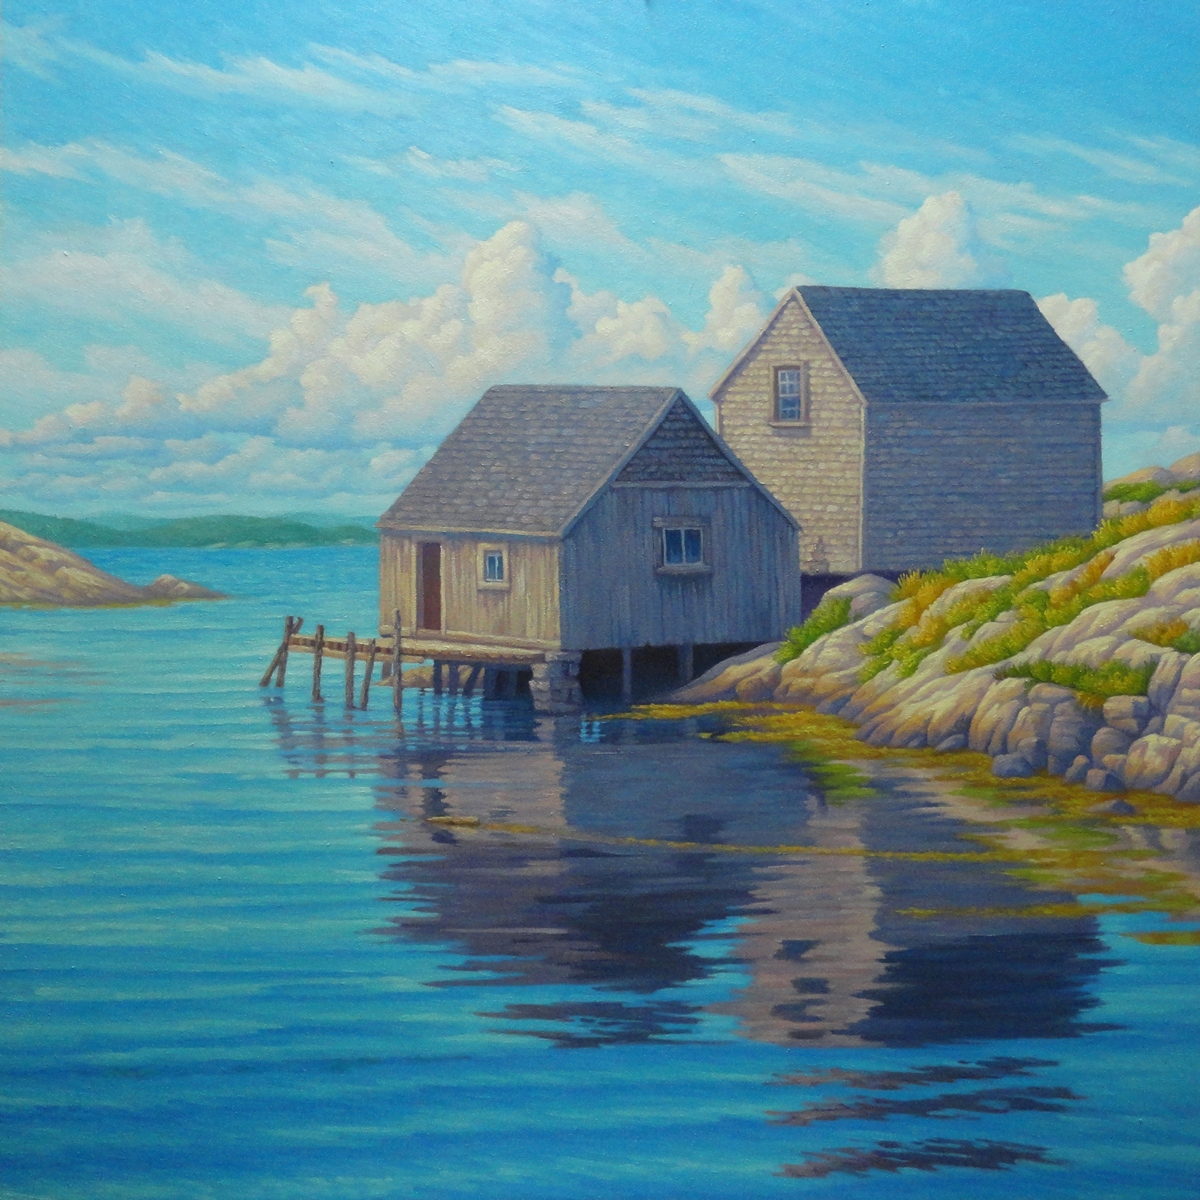 Beach House, Peggy's Cove. oil/canvas, 36 x 36 inches.